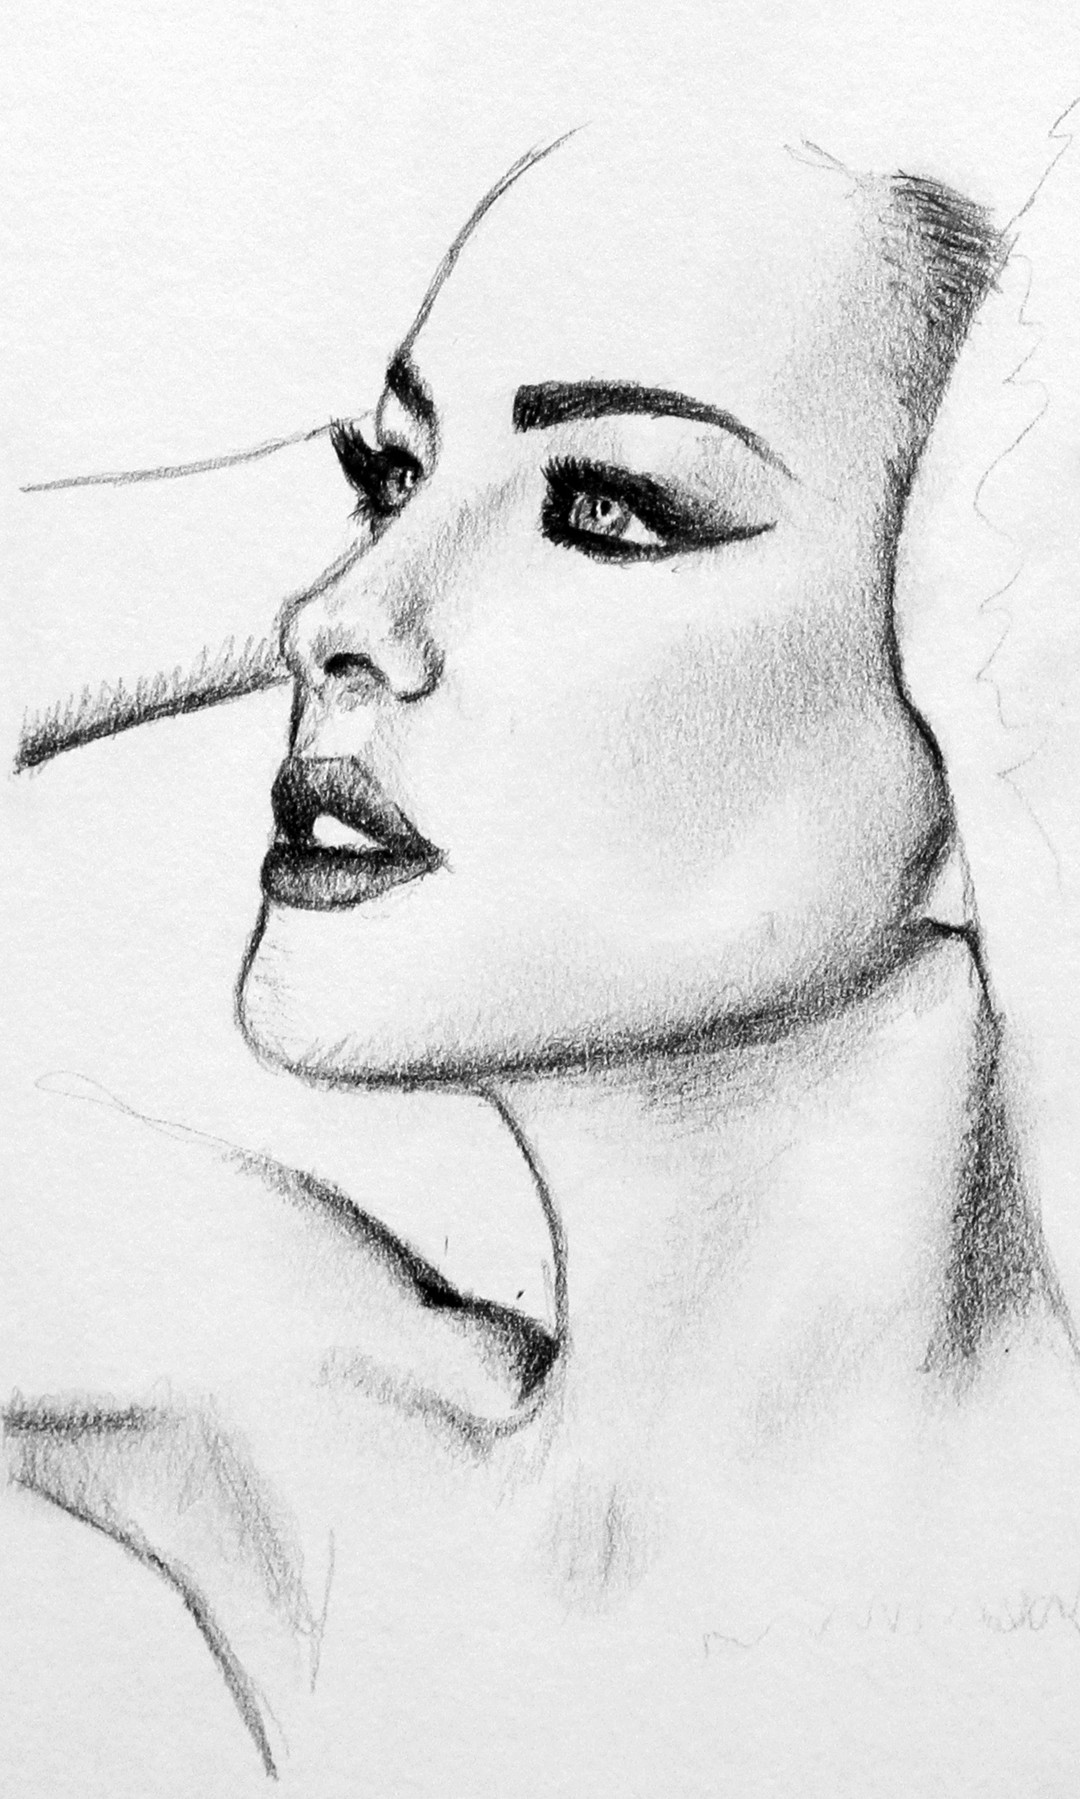 Drawn ballerine face (2013 (2013 by by Pencil